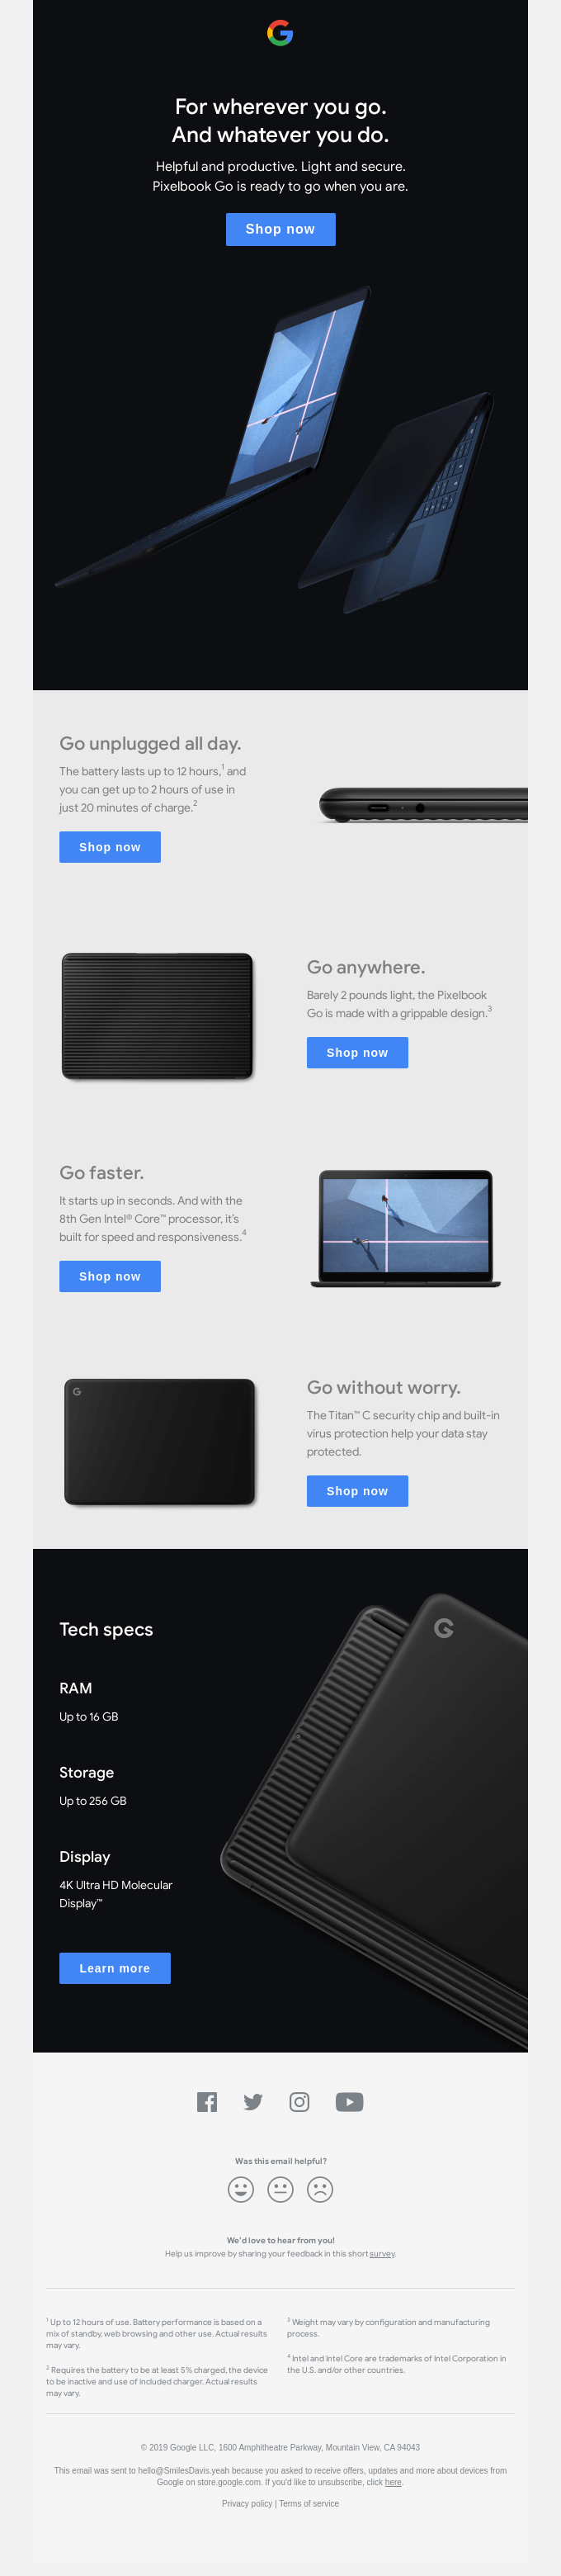 Google product launch email